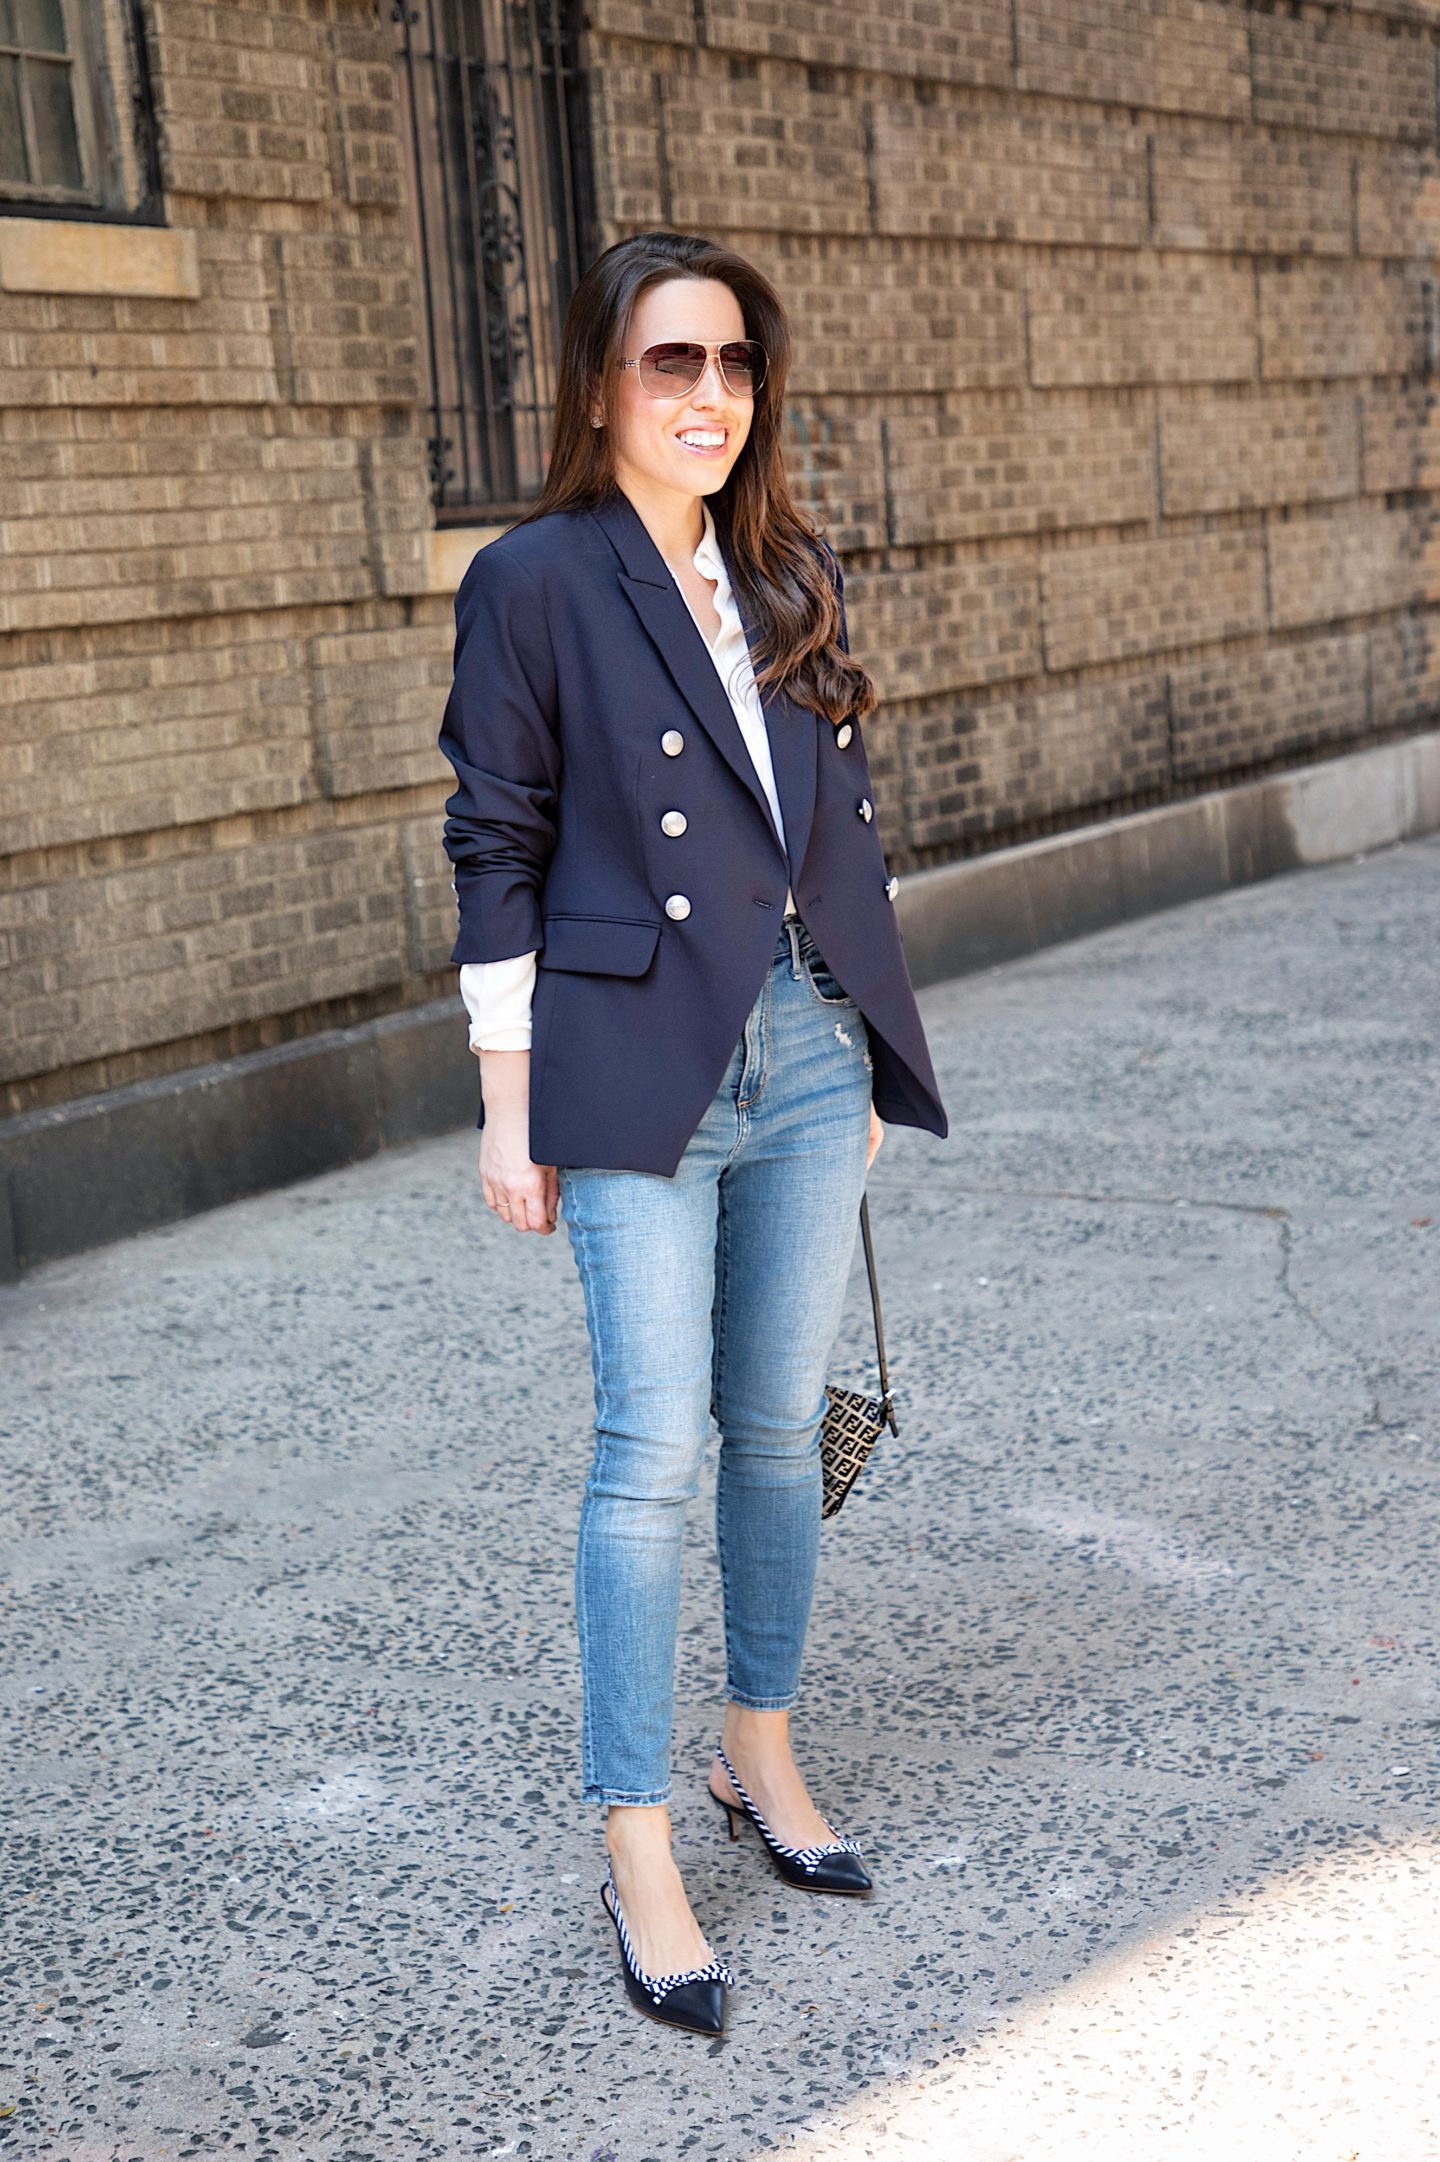 ana florentina wearing a navy blazer with buttons